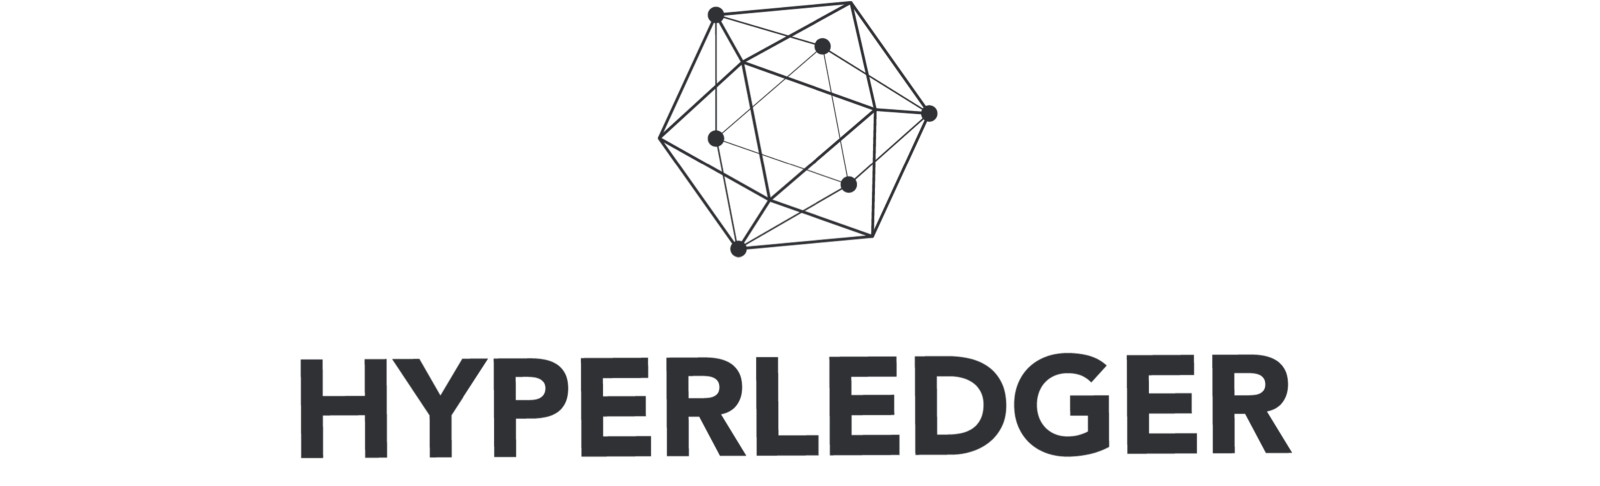 /architecting-a-hyperledger-solution-things-to-keep-in-mind-78033e6fee75 feature image